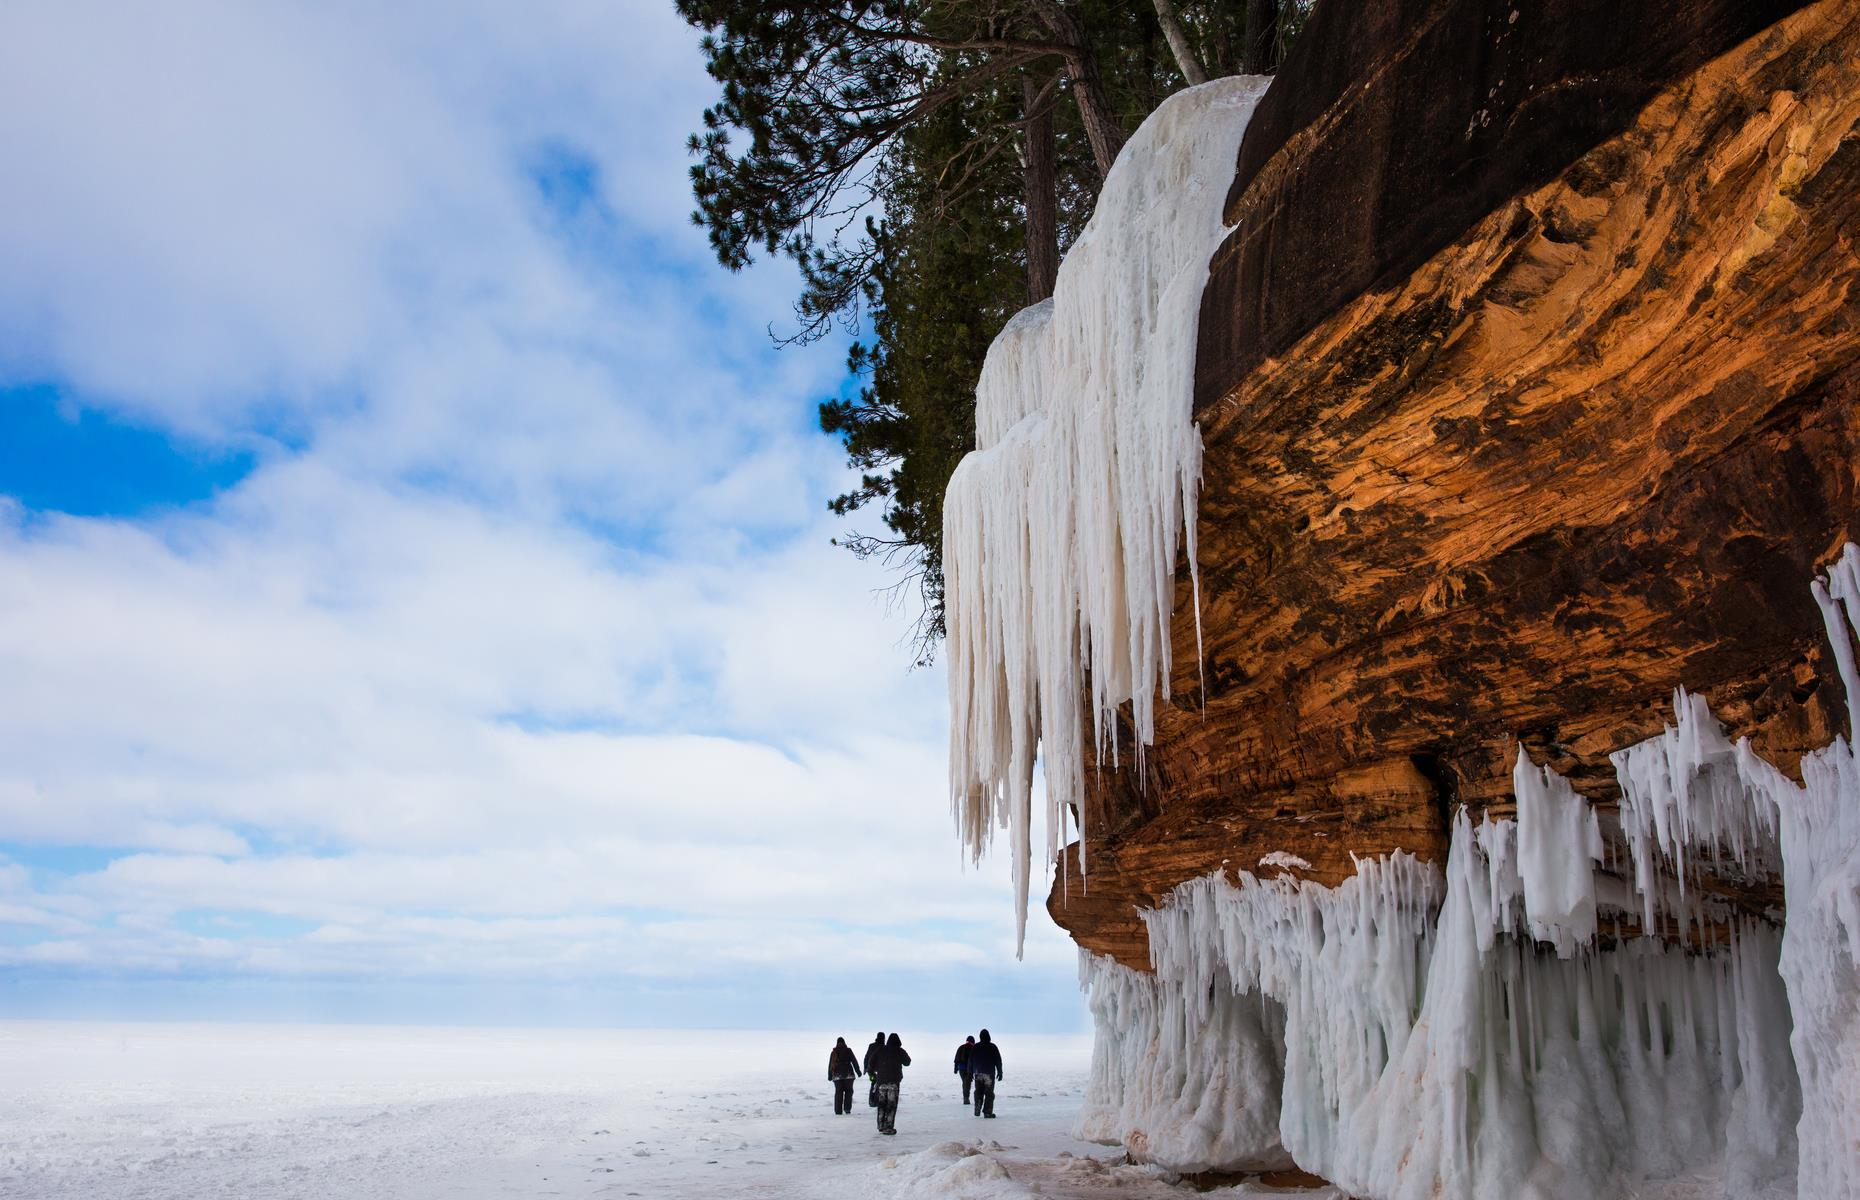 Slide 32 of 61: Apostle Islands National Lakeshore boasts all manner of natural wonders, from craggy rock formations and wind-battered cliffs to sandy strands – but none are more intriguing than the ice caves that form here each winter. The caves are accessible from a trail beginning at the Meyers Beach parking area and winding downwards (you'll walk up to six miles in total depending on how many of the caves you take in). Their opening times are entirely dependent on conditions – check the NPS website if you're planning a visit.